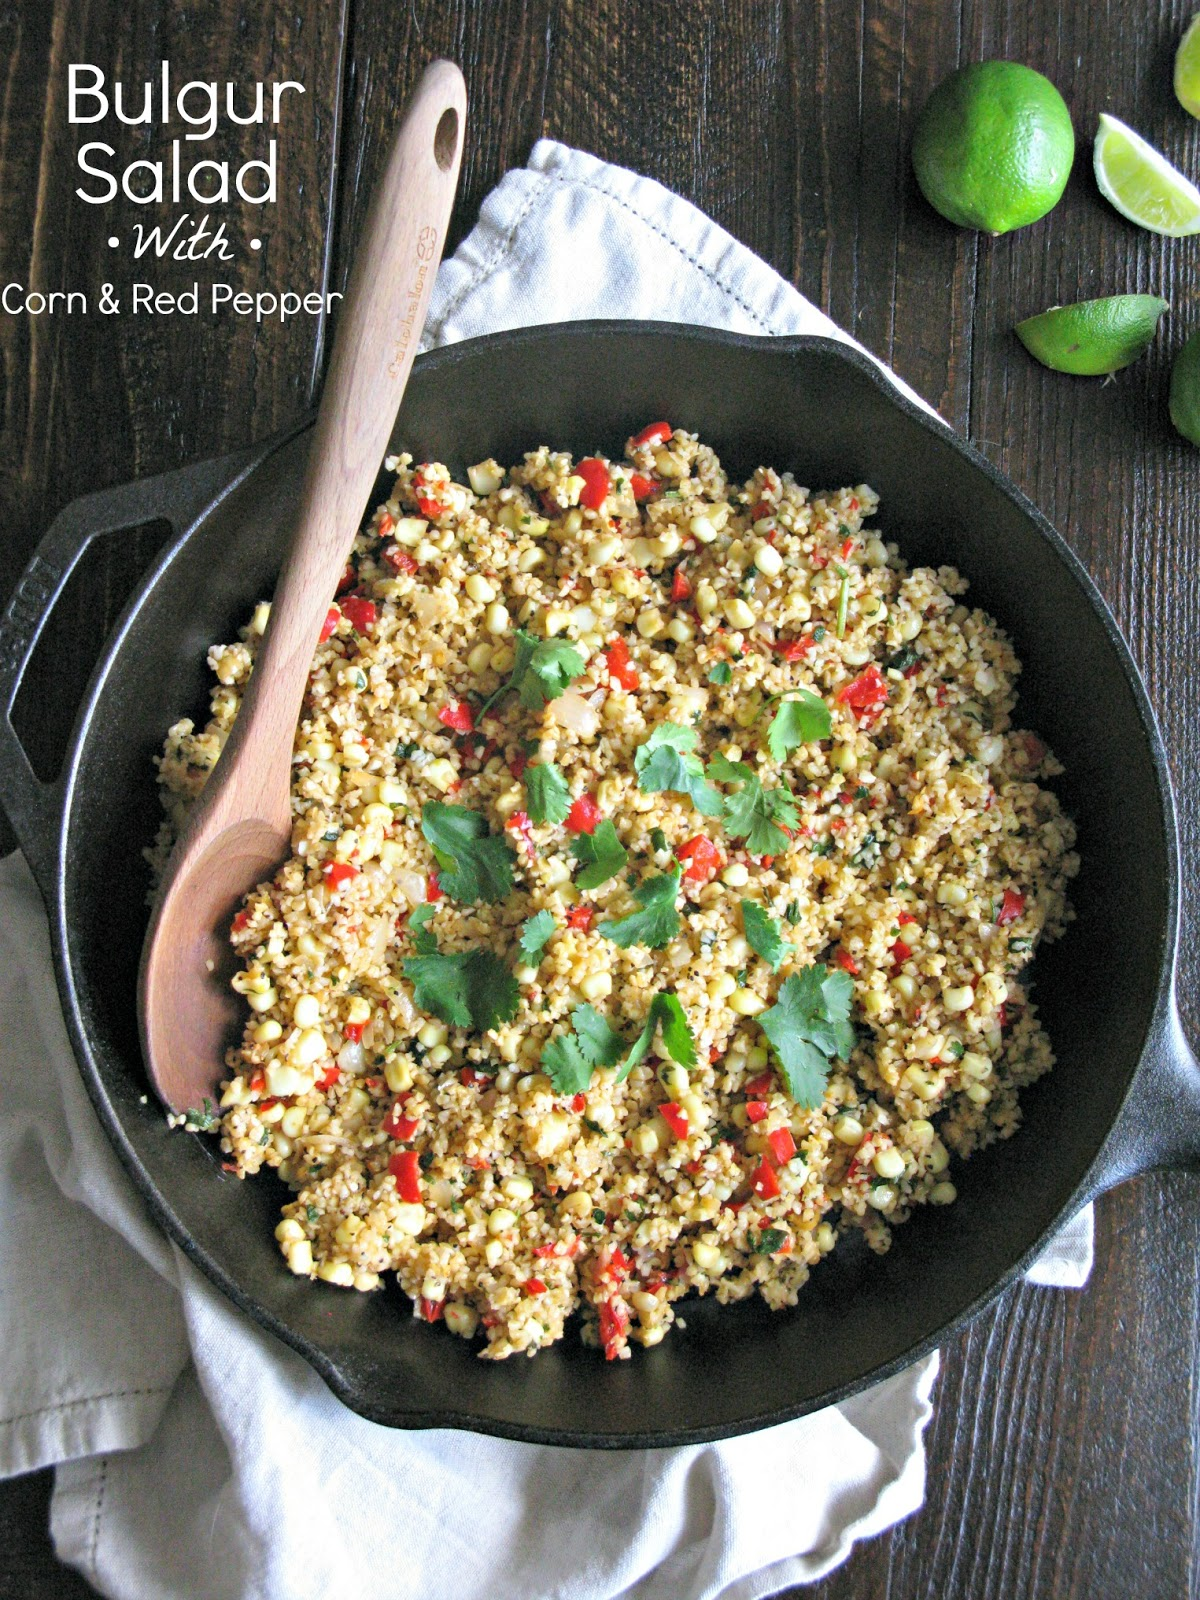 Love And Bellinis: Bulgur Salad With Corn and Red Pepper